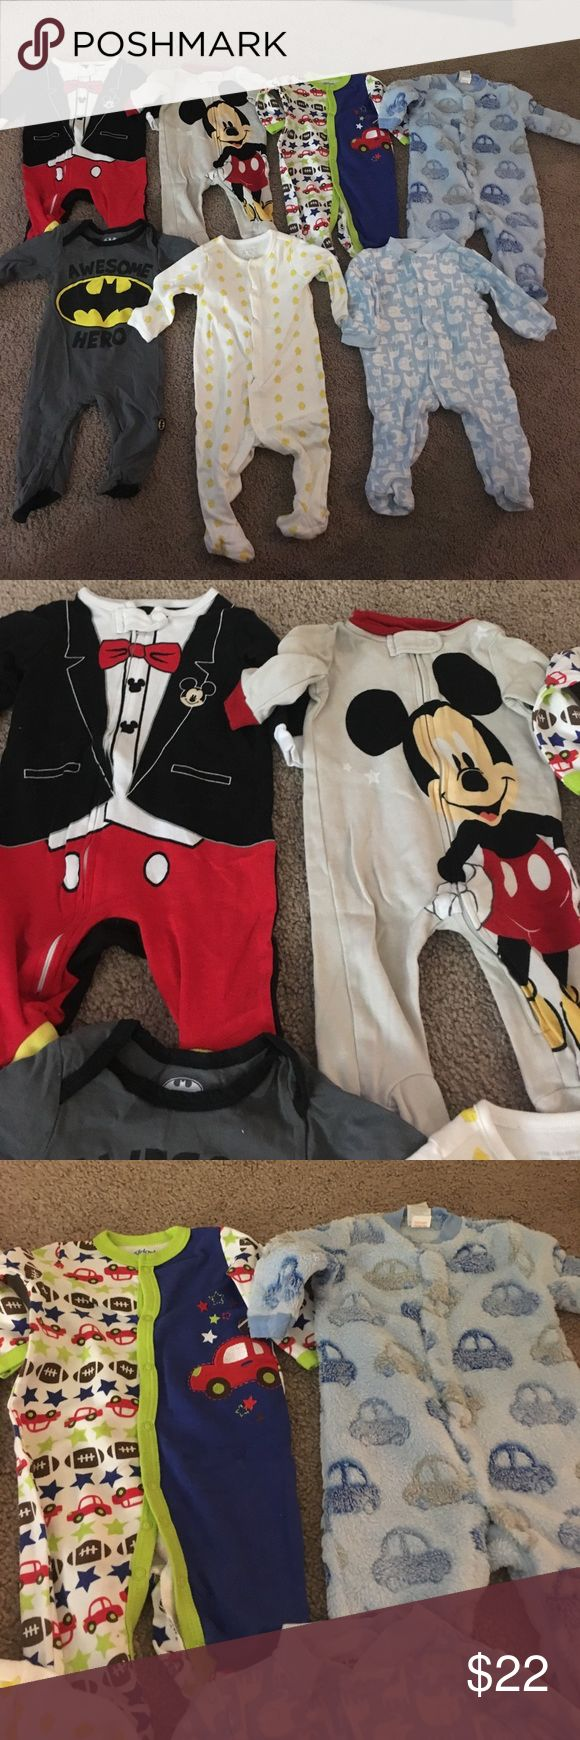 Baby Boy Bundle Baby boy bundle includes 7 footies, 12 short sleeve onesies, 1 long sleeve onesie and 1 2piece outfit. All in excellent conditions! Some brands are Carters, Disney Store, The Children's Place and Nike. One Pieces